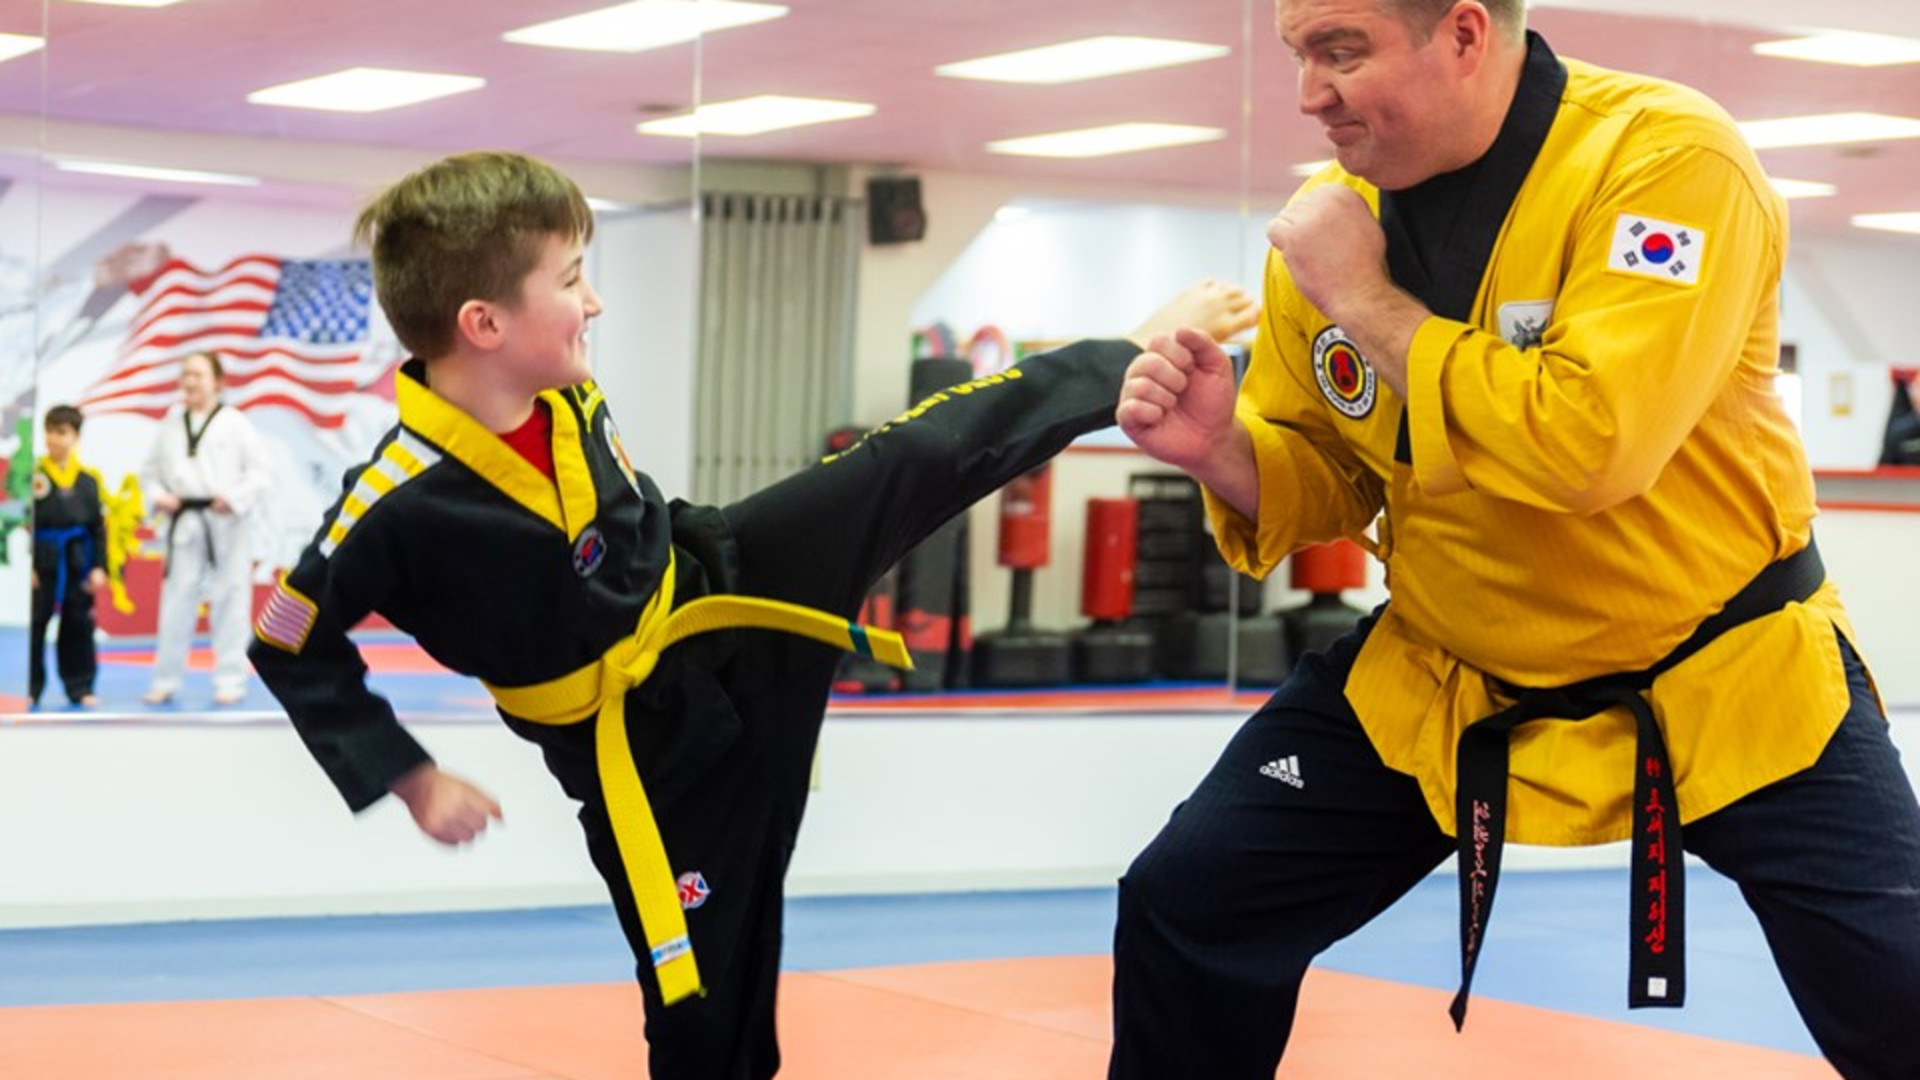 Franklin's Premier Martial Arts Training Facility